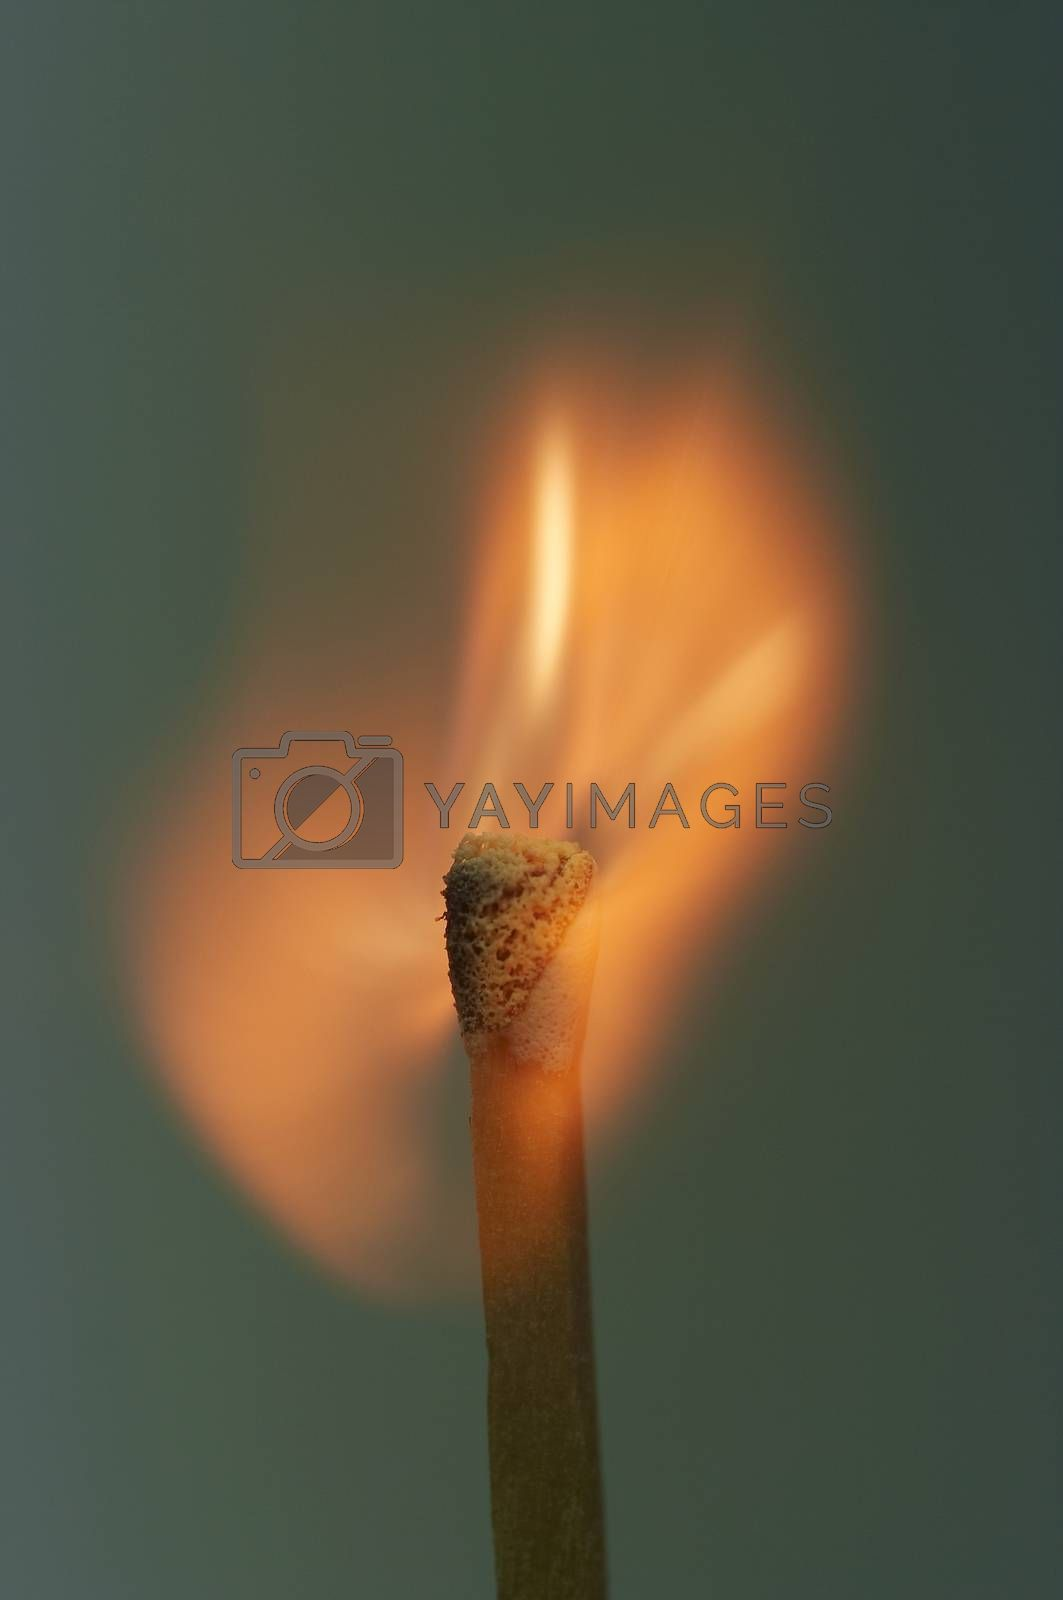 close-up of a burning match